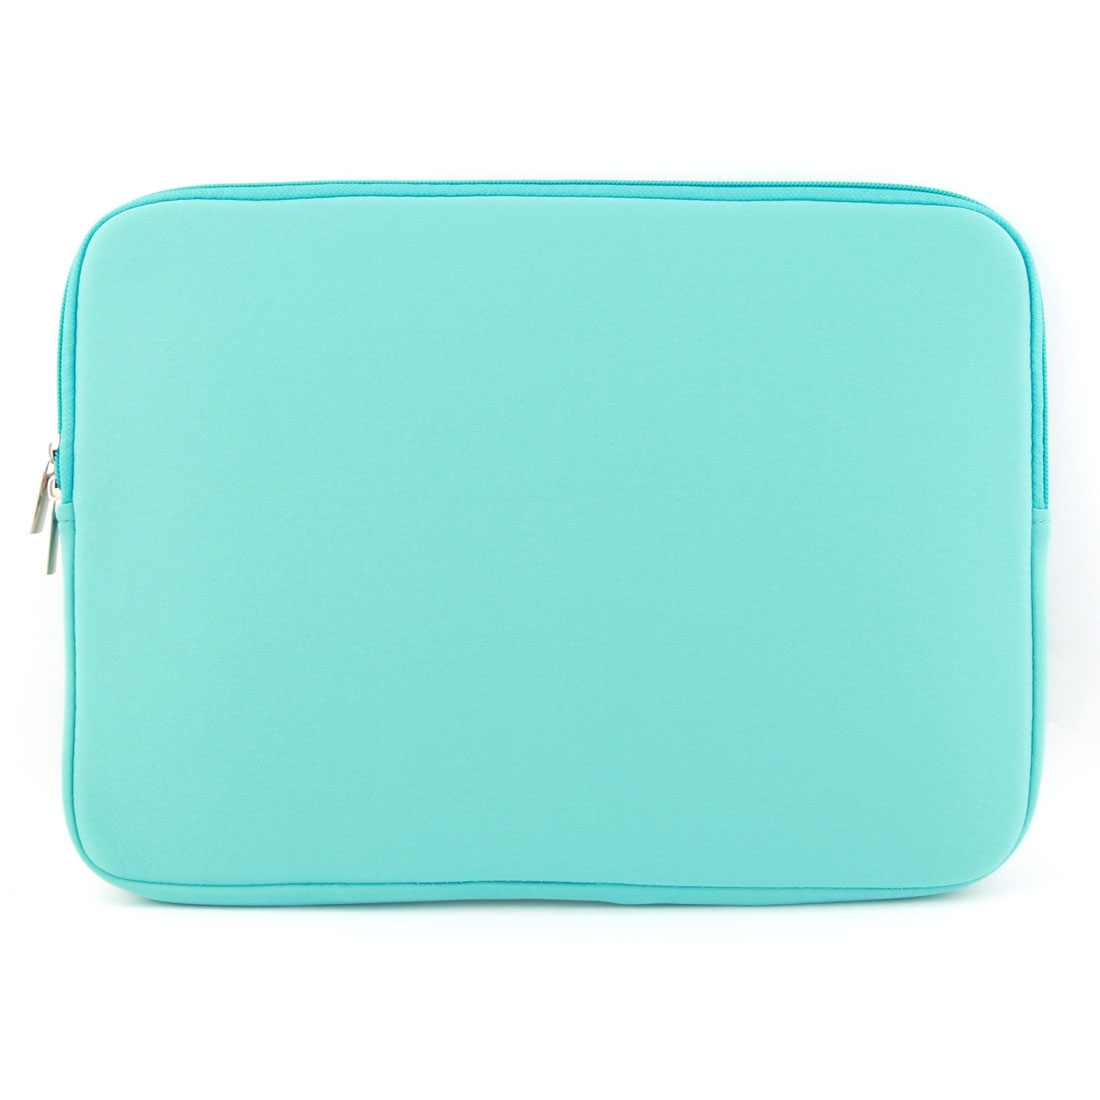 PC Notebook Neoprene Dual Zipper Pouch Laptop Sleeve Cover Sky Blue for Macbook 15.4 Inch